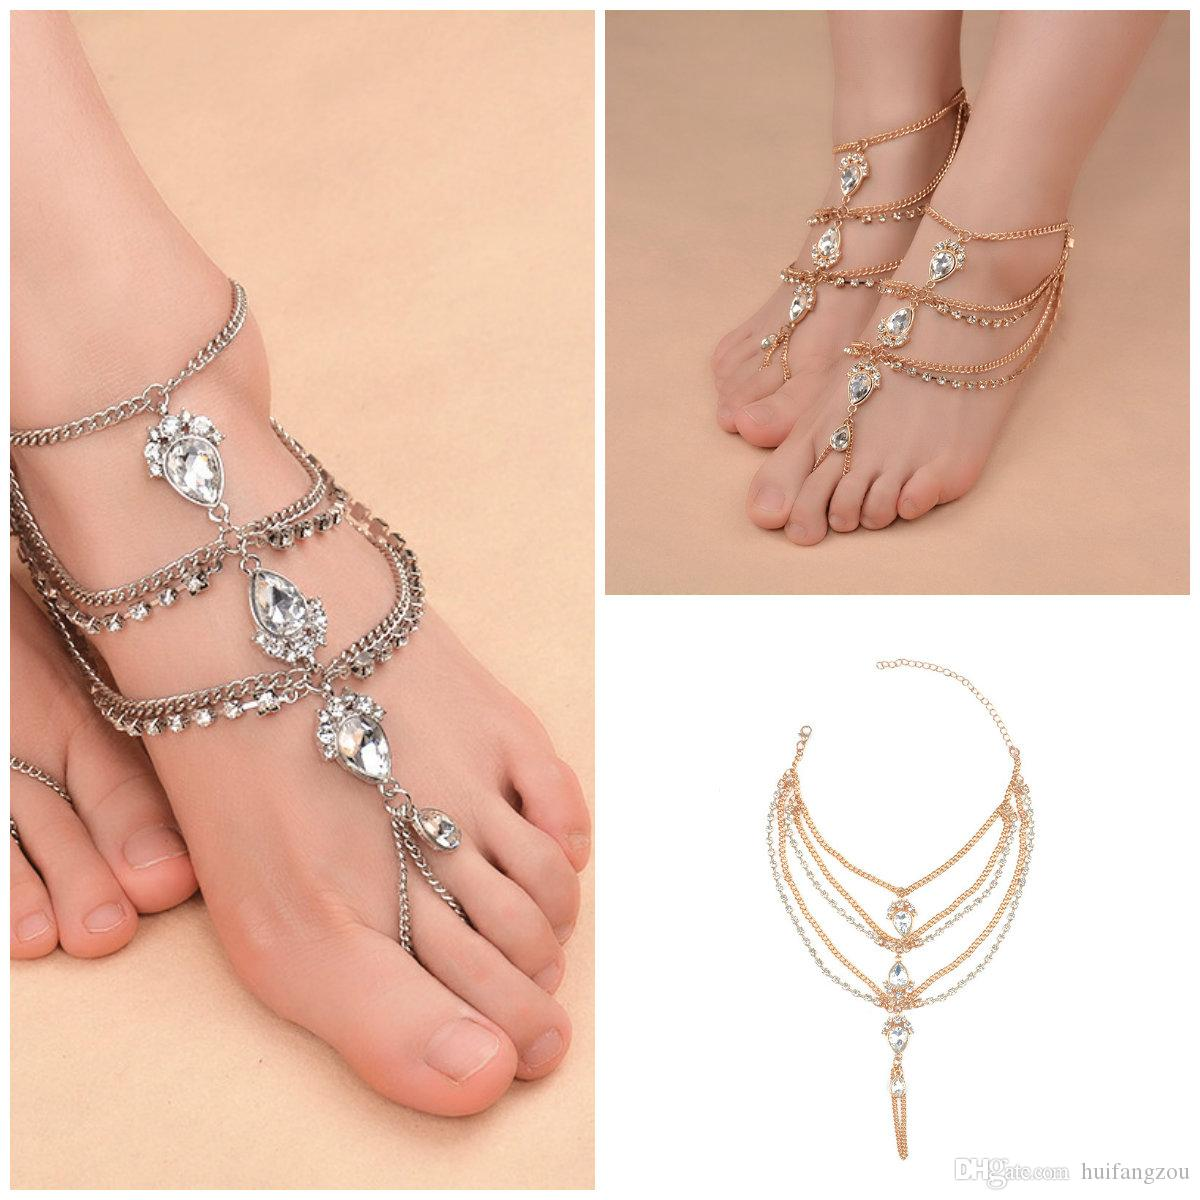 diy w and cool buy small custom with anklet free on steel com bracelets wholesale foot ankle chain shipping stainless bracelet get jewelry butterfly aliexpress charms